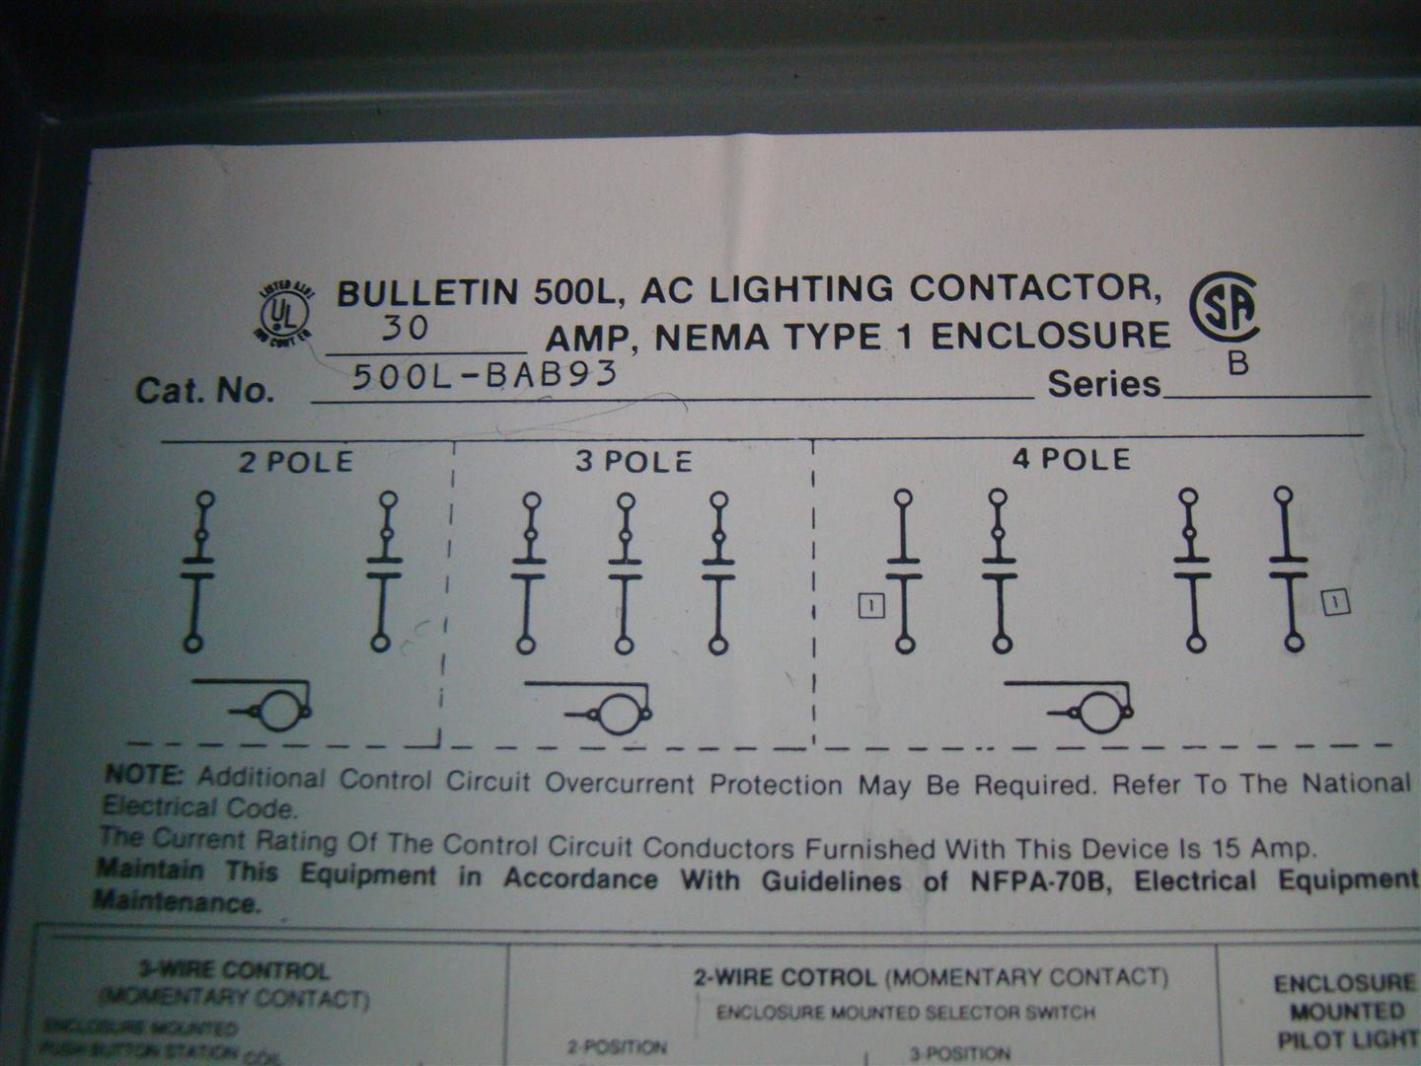 aii104 allen bradley lighting contactor 30amps 460 480v 500l bab93 5 definite purpose contactor wiring diagram wiring diagrams Cutler Hammer Contactors at mifinder.co